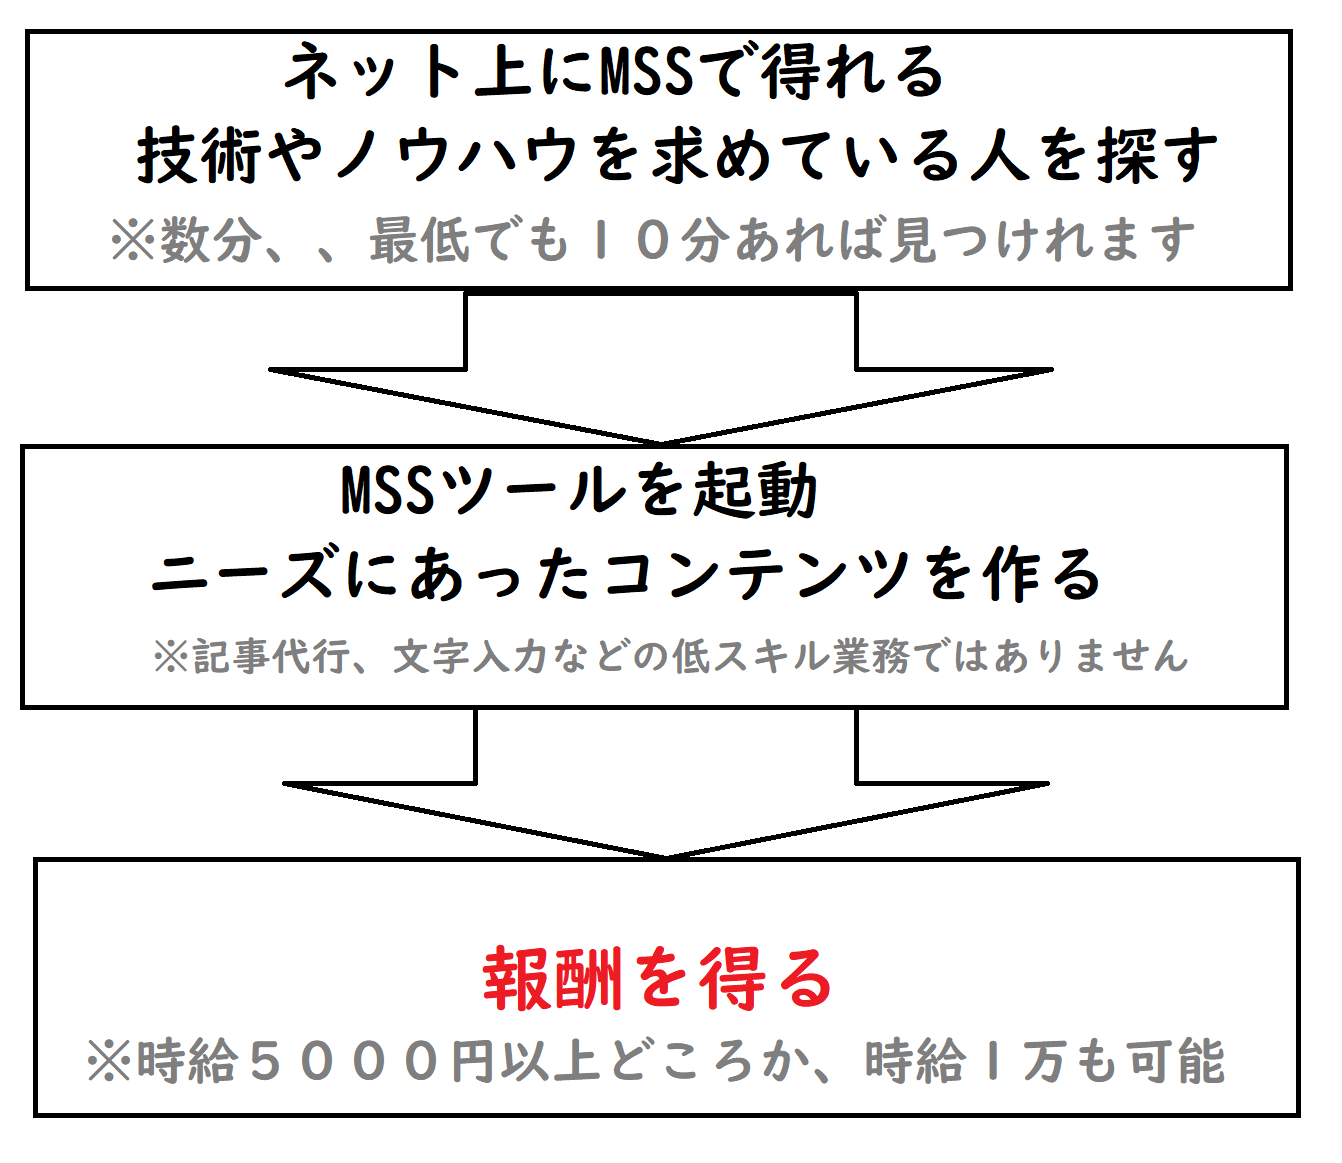 20190126111224f08.png